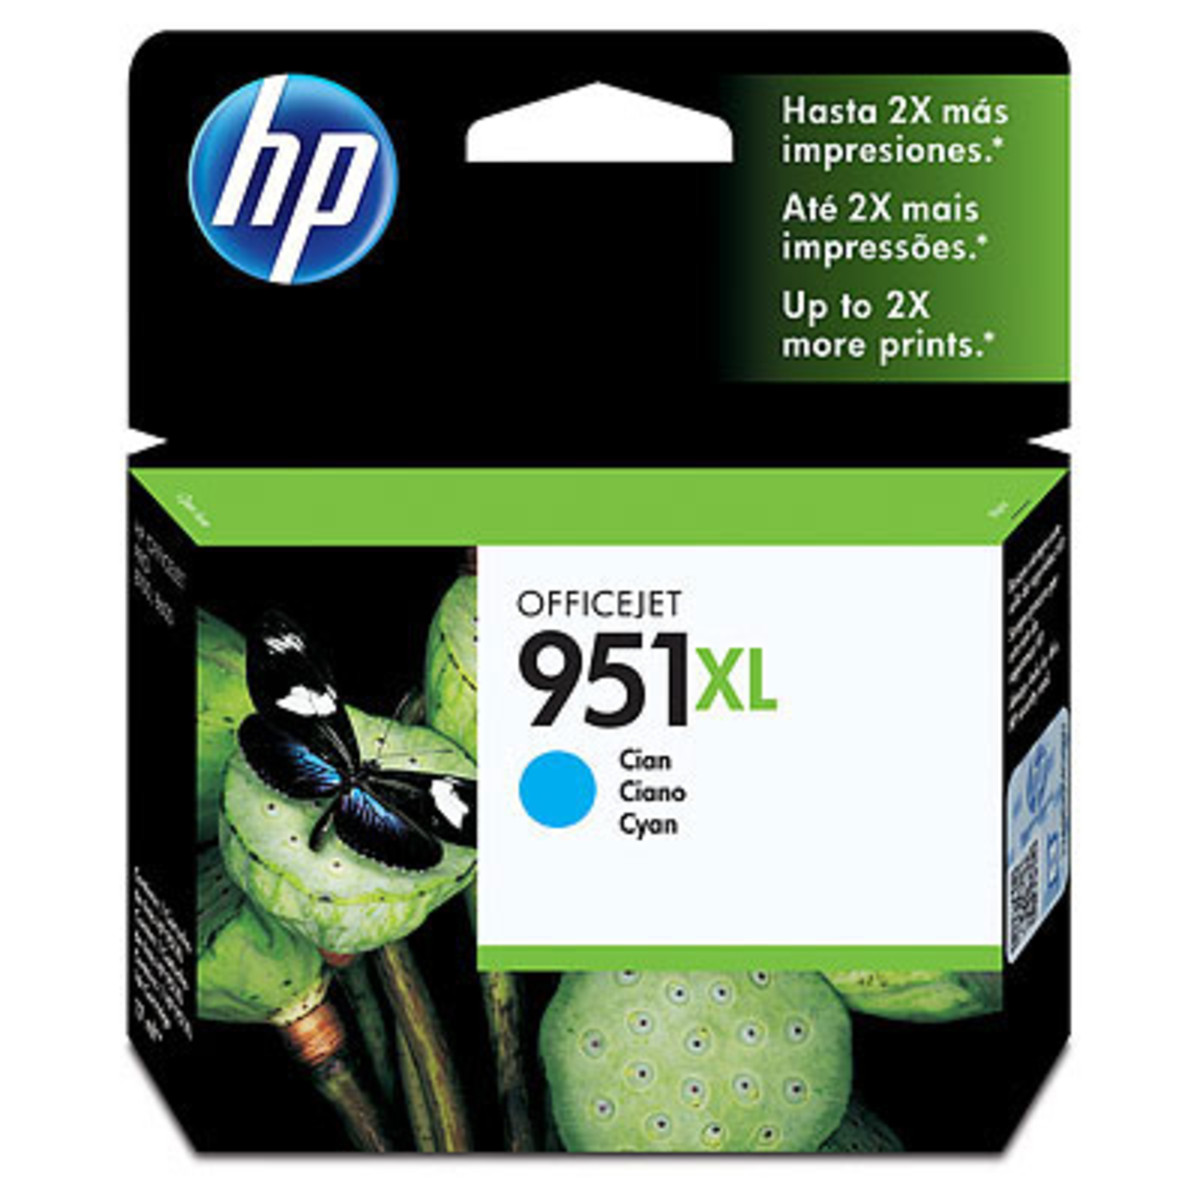 HP 951XL (CN046AA) Cyan Ink Cartridge - High Yield